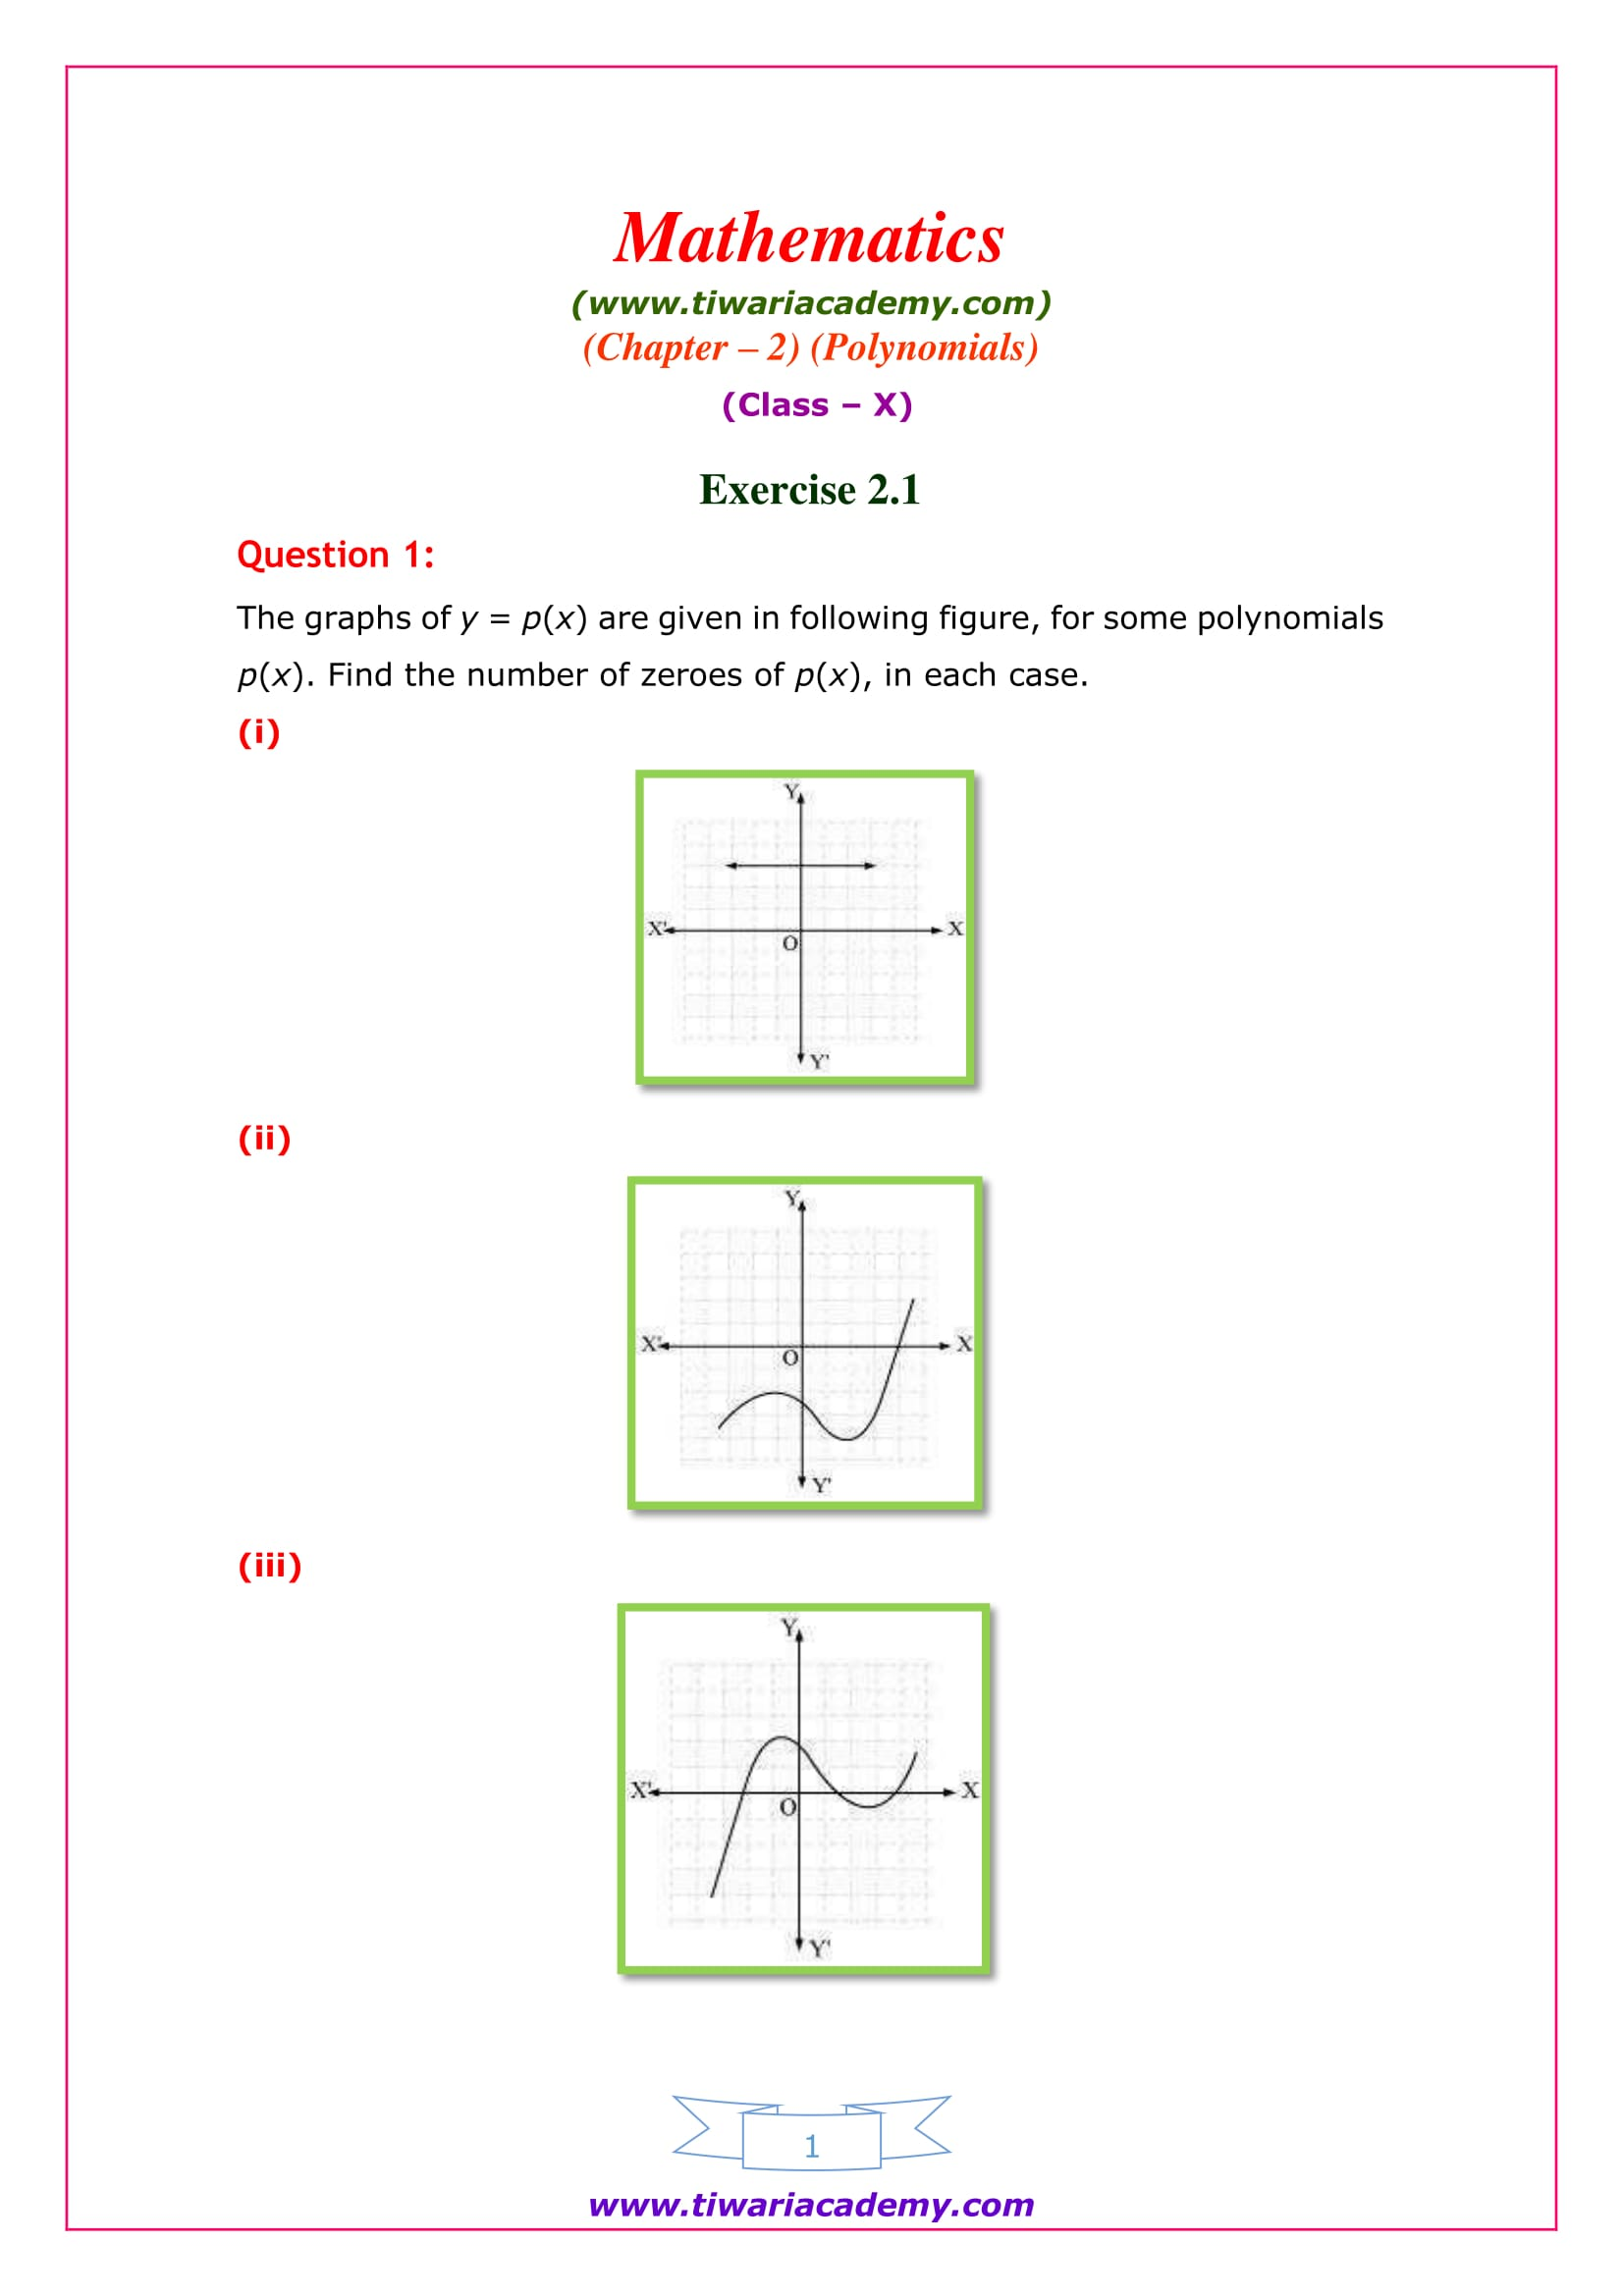 NCERT Solutions for Class 10 Maths Chapter 2 Exercise 2.1 Question 1 part i, ii, ii